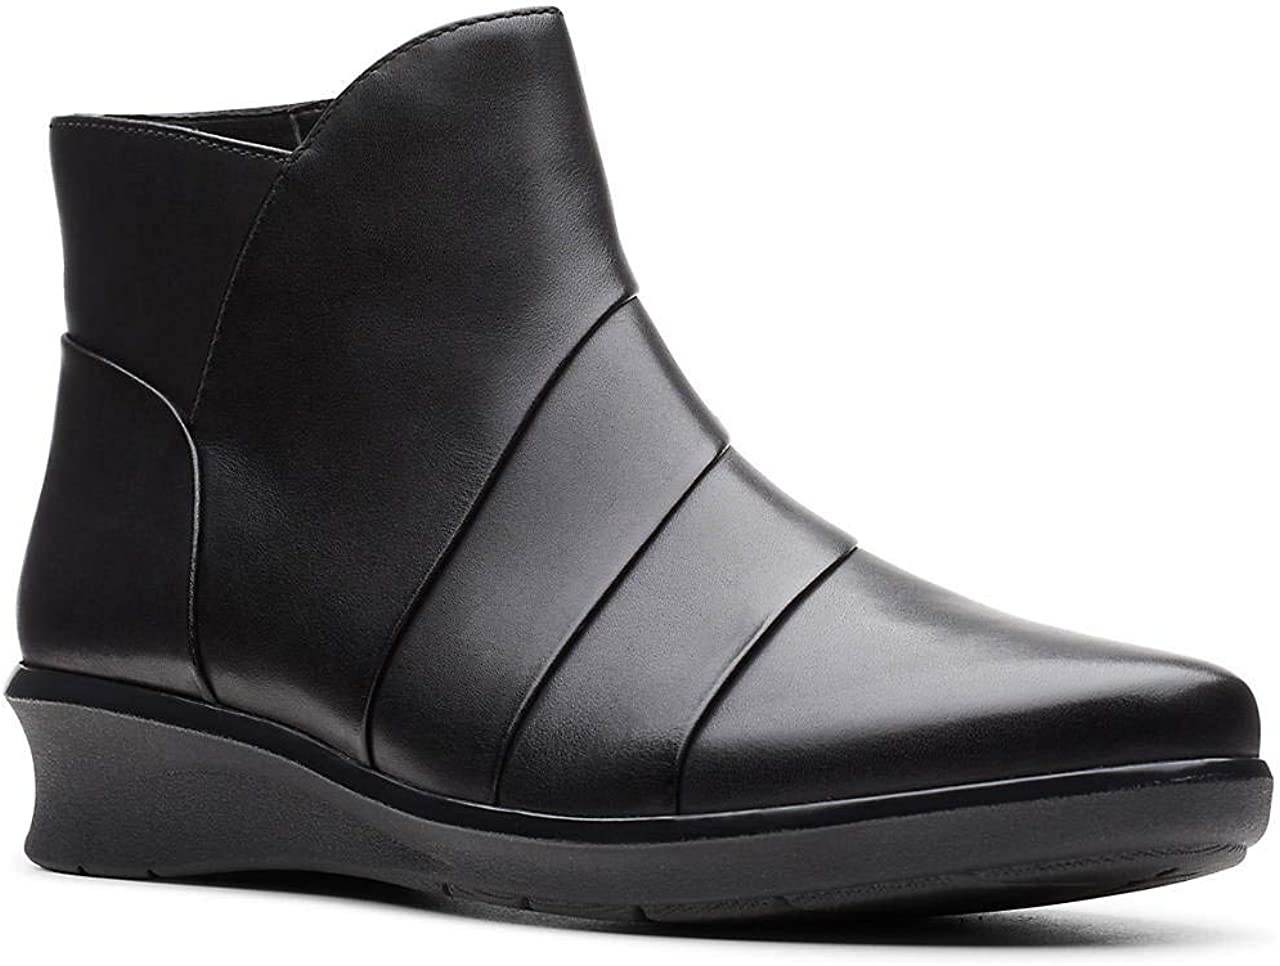 Max 67% OFF Clarks Women's Hope Rest Black Limited time sale Boot Leather Ankle